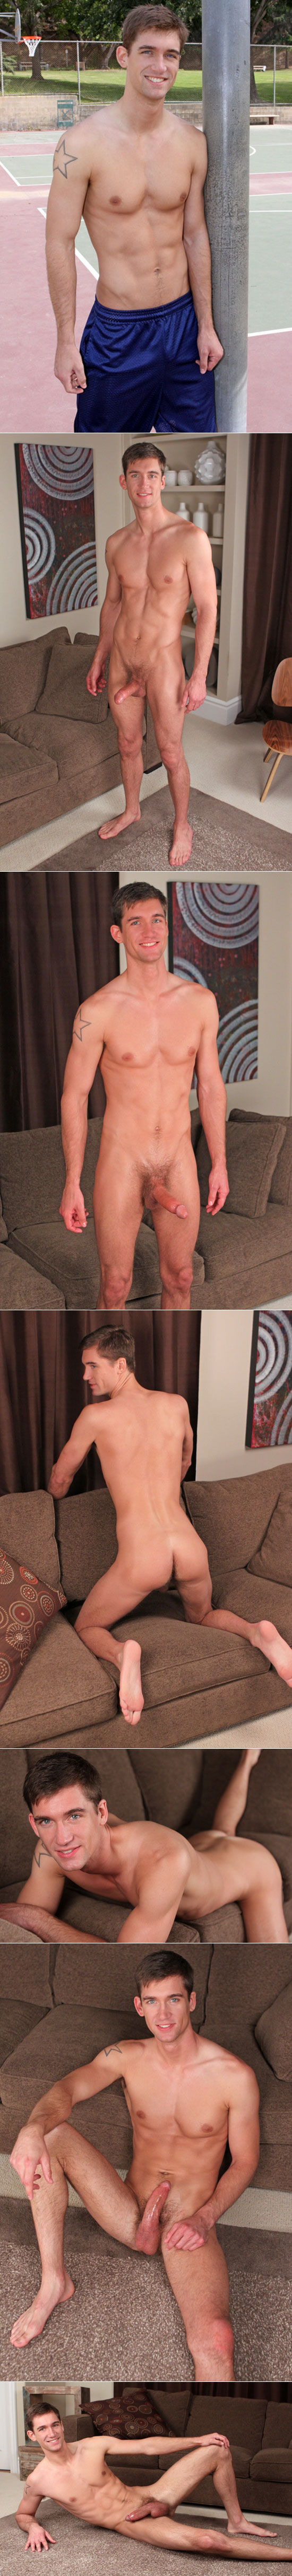 Sean Cody video downloads